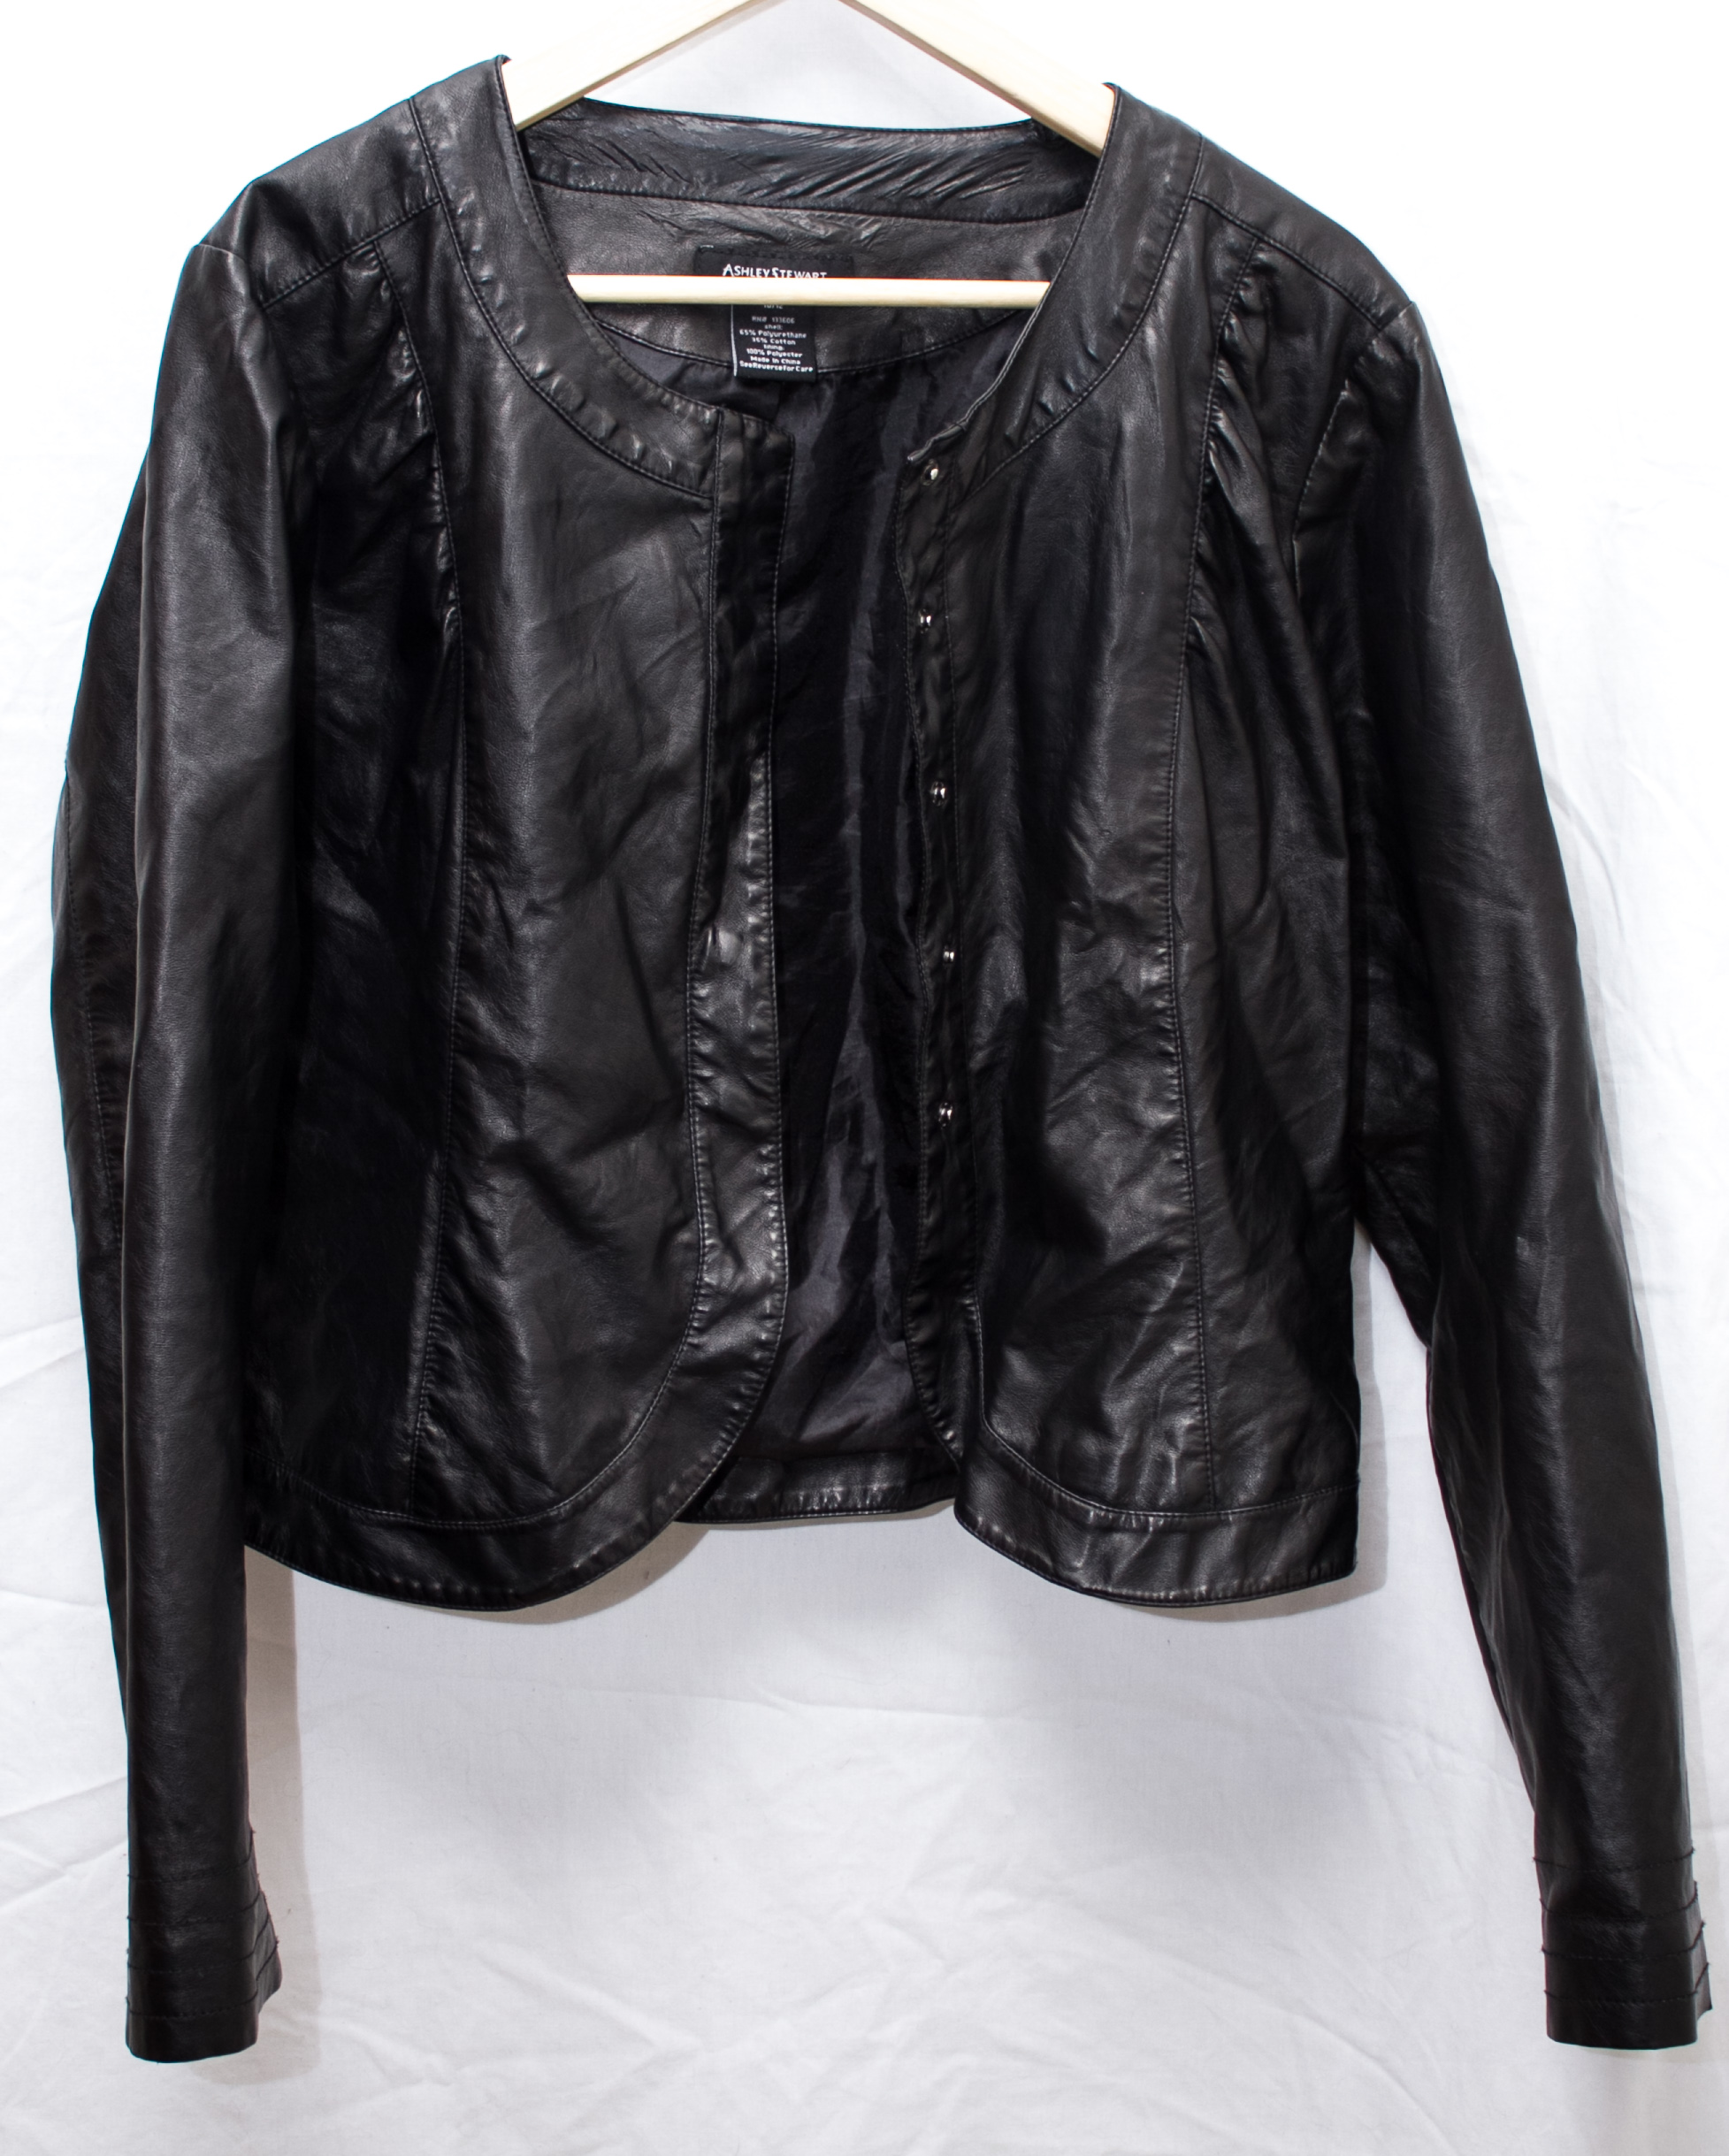 0b47f7f9dc04f Ashley Stewart Faux Leather Jacket from Emmas Boutique